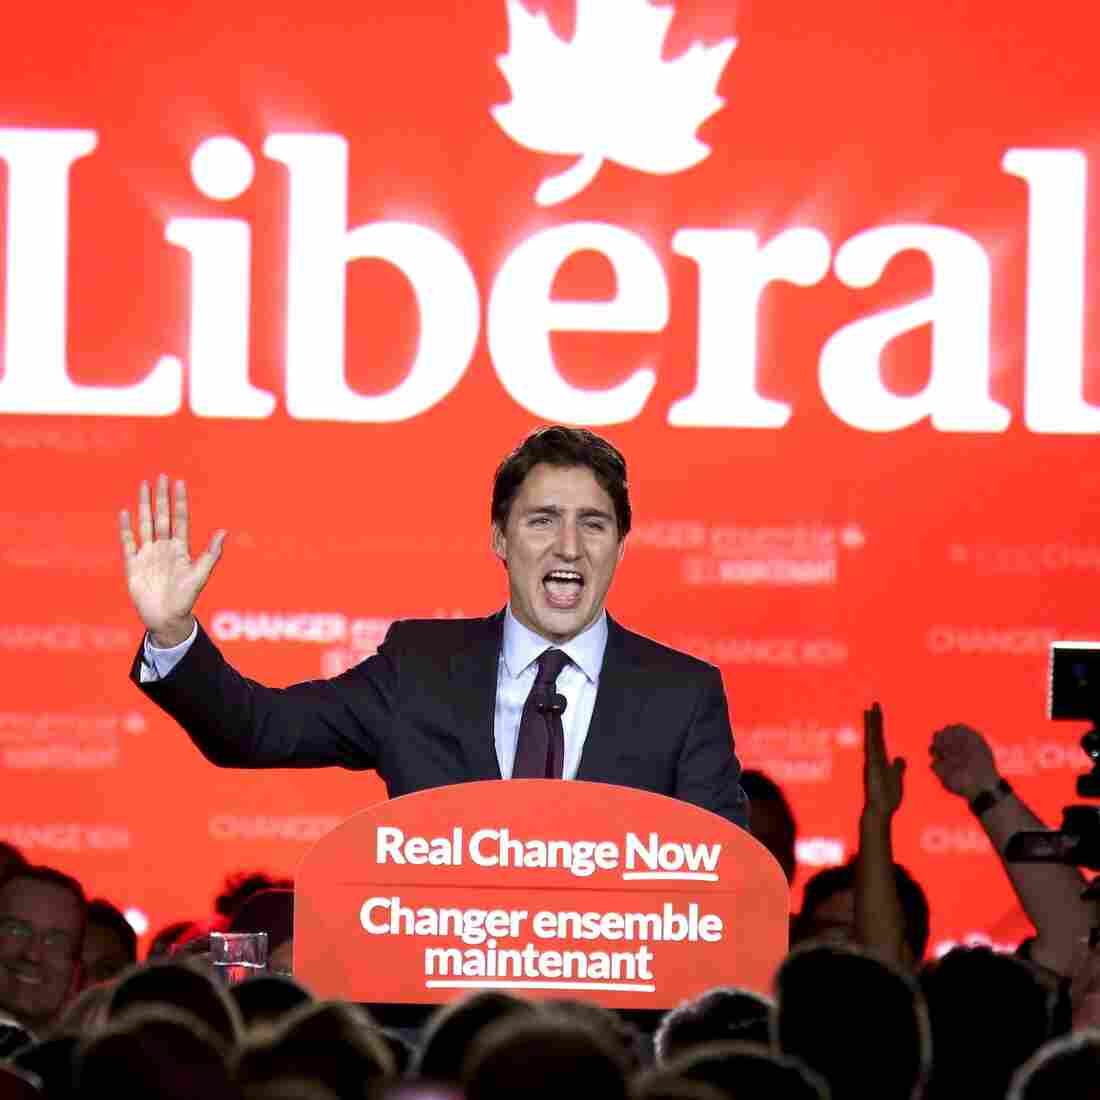 Liberal Party leader Justin Trudeau gives a victory speech in Montreal, Quebec, after winning a stunning upset over Stephen Harper in Canada's federal election Monday.